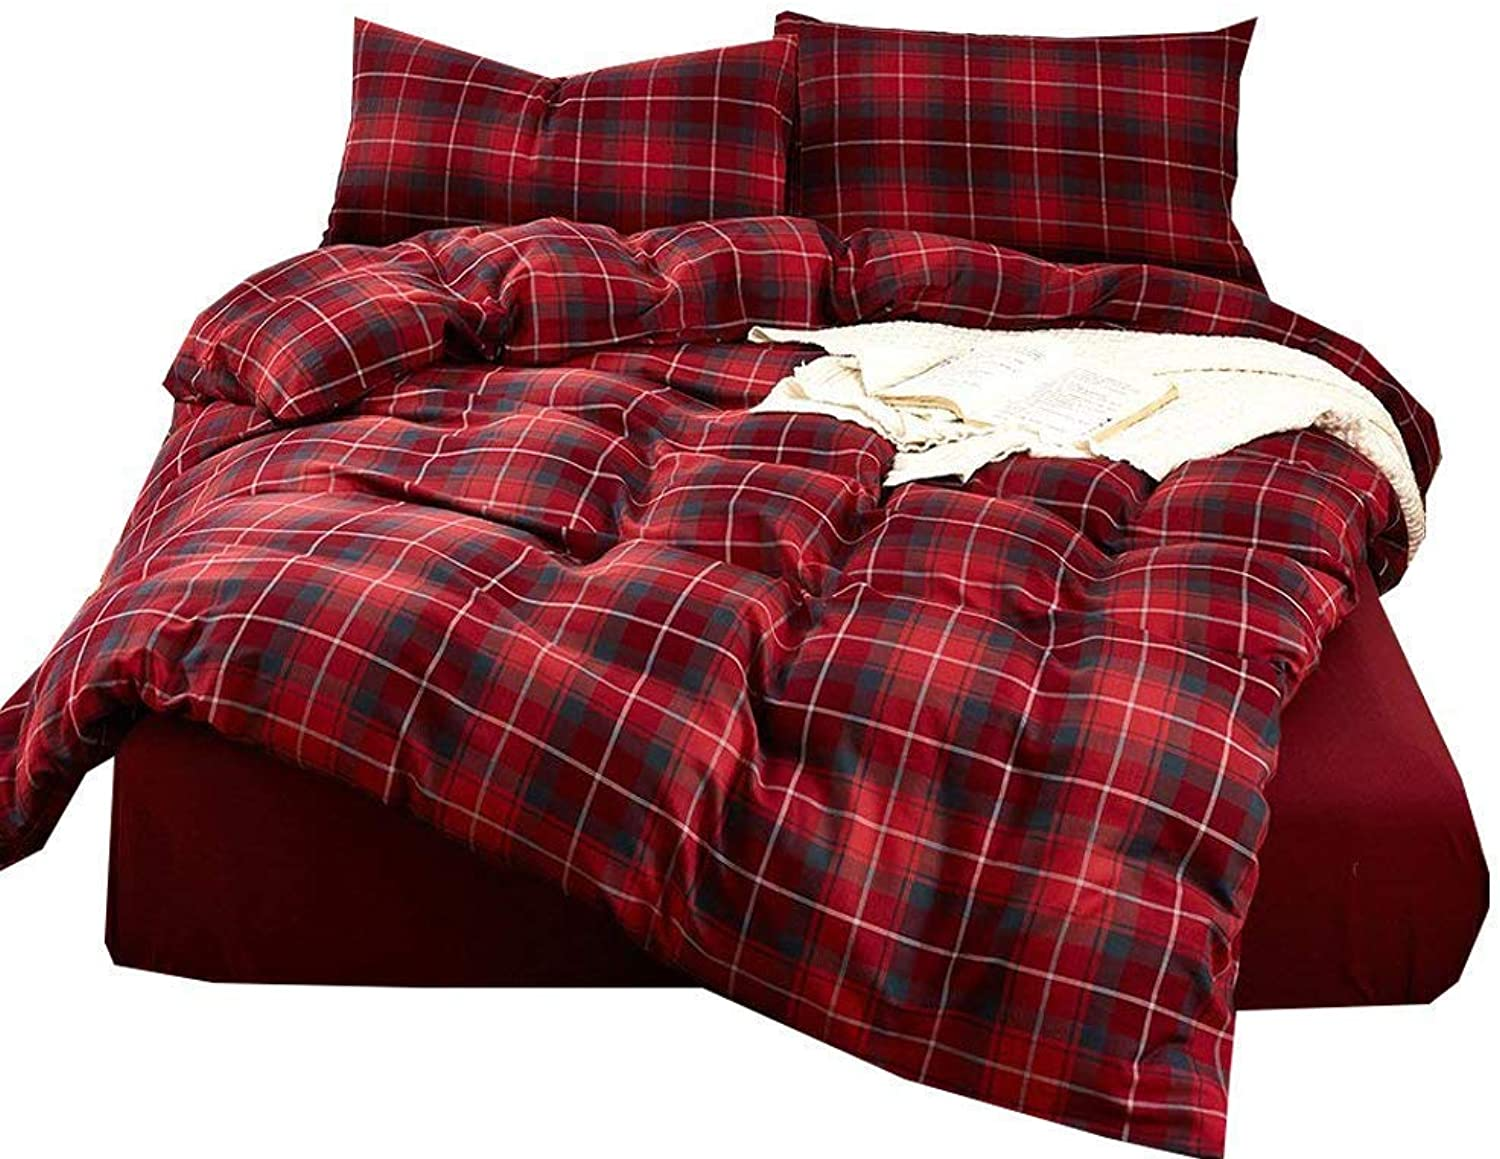 XUKEJU Elegant Reversible Bedding Set Printed Plaid 100% Cotton Flannel 3 Pieces Duvet Cover Geometric Pattern Grid Gingham Quilt Cover Kids Teens Adults (Red, Full Queen)